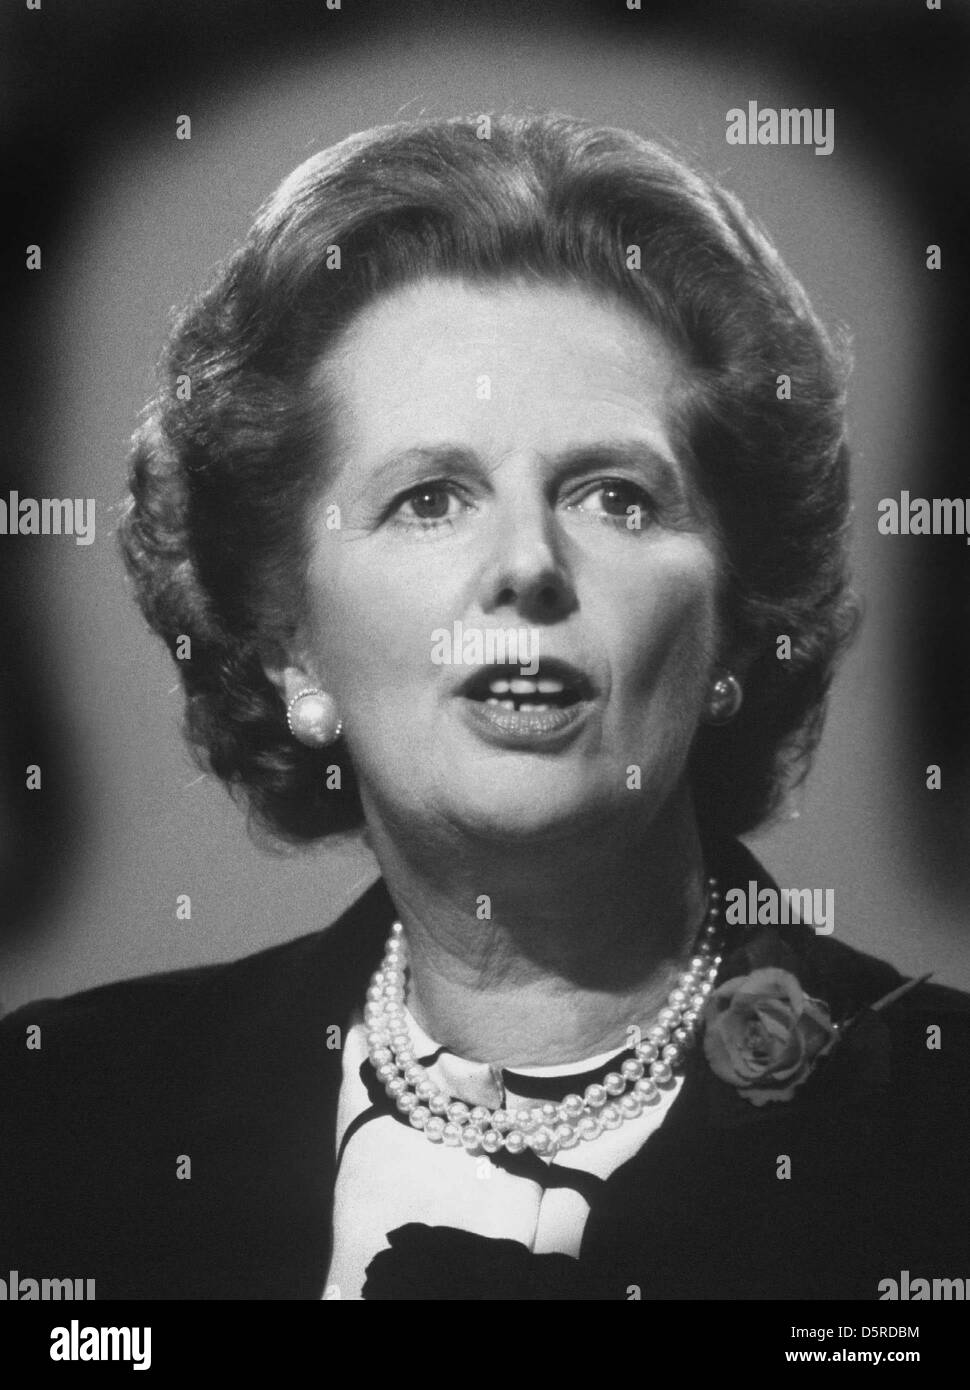 Archive: Lady Margaret Thatcher died today 8th April, 2013. This picture was taken in the '80's when she - Stock Image